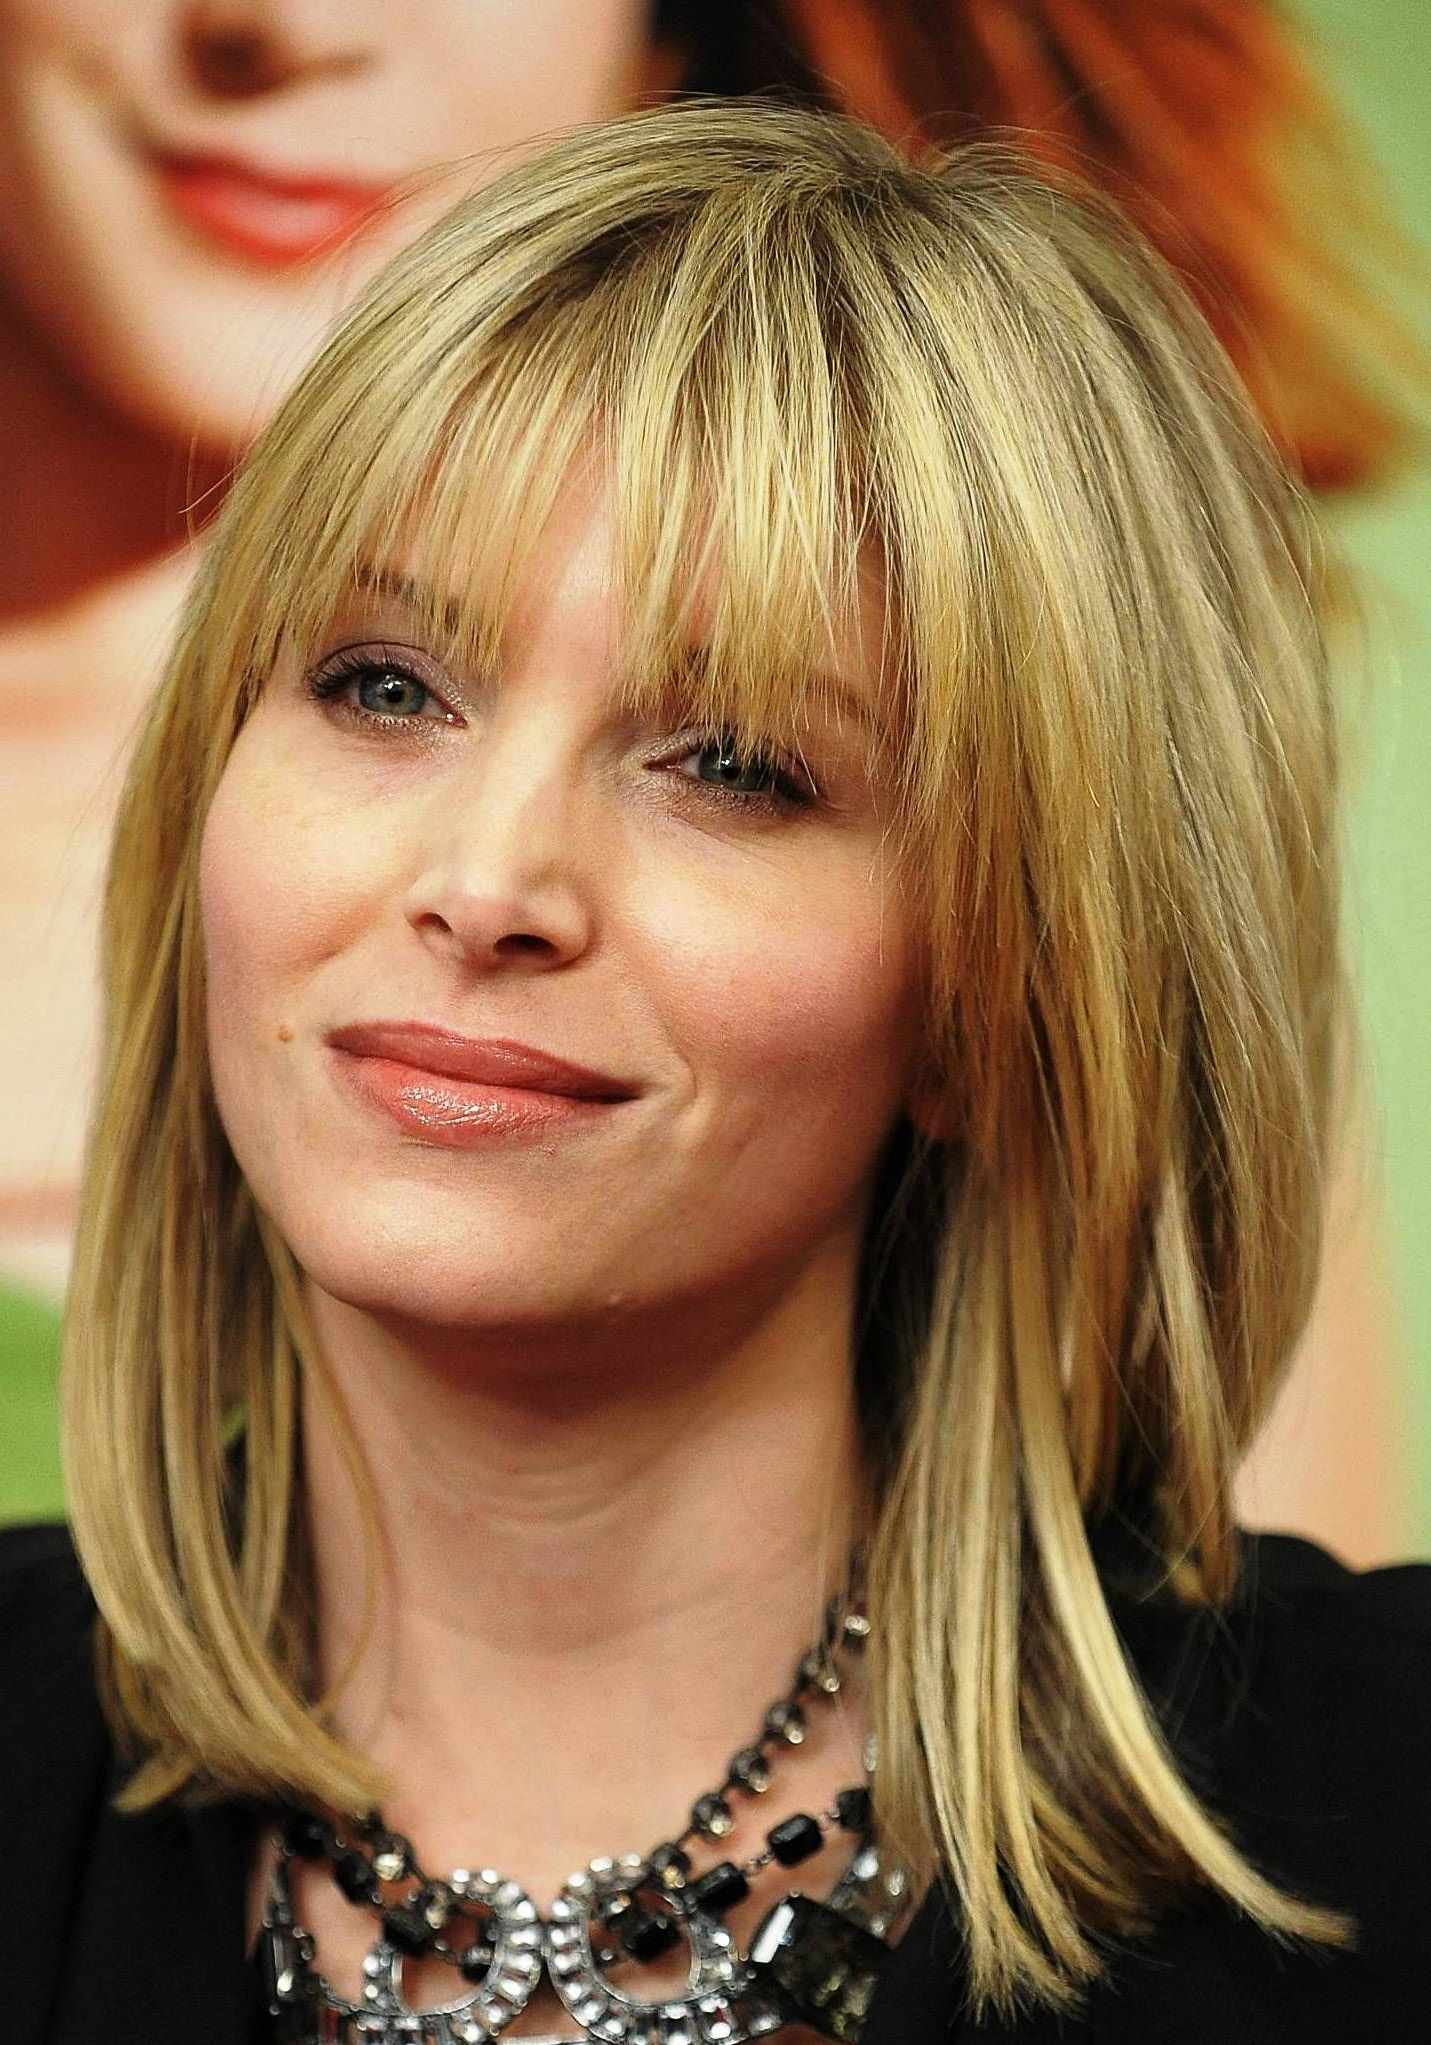 Medium Hairstyles With Bangs Round With Recent Medium Hairstyles For Square Faces With Bangs (View 15 of 20)